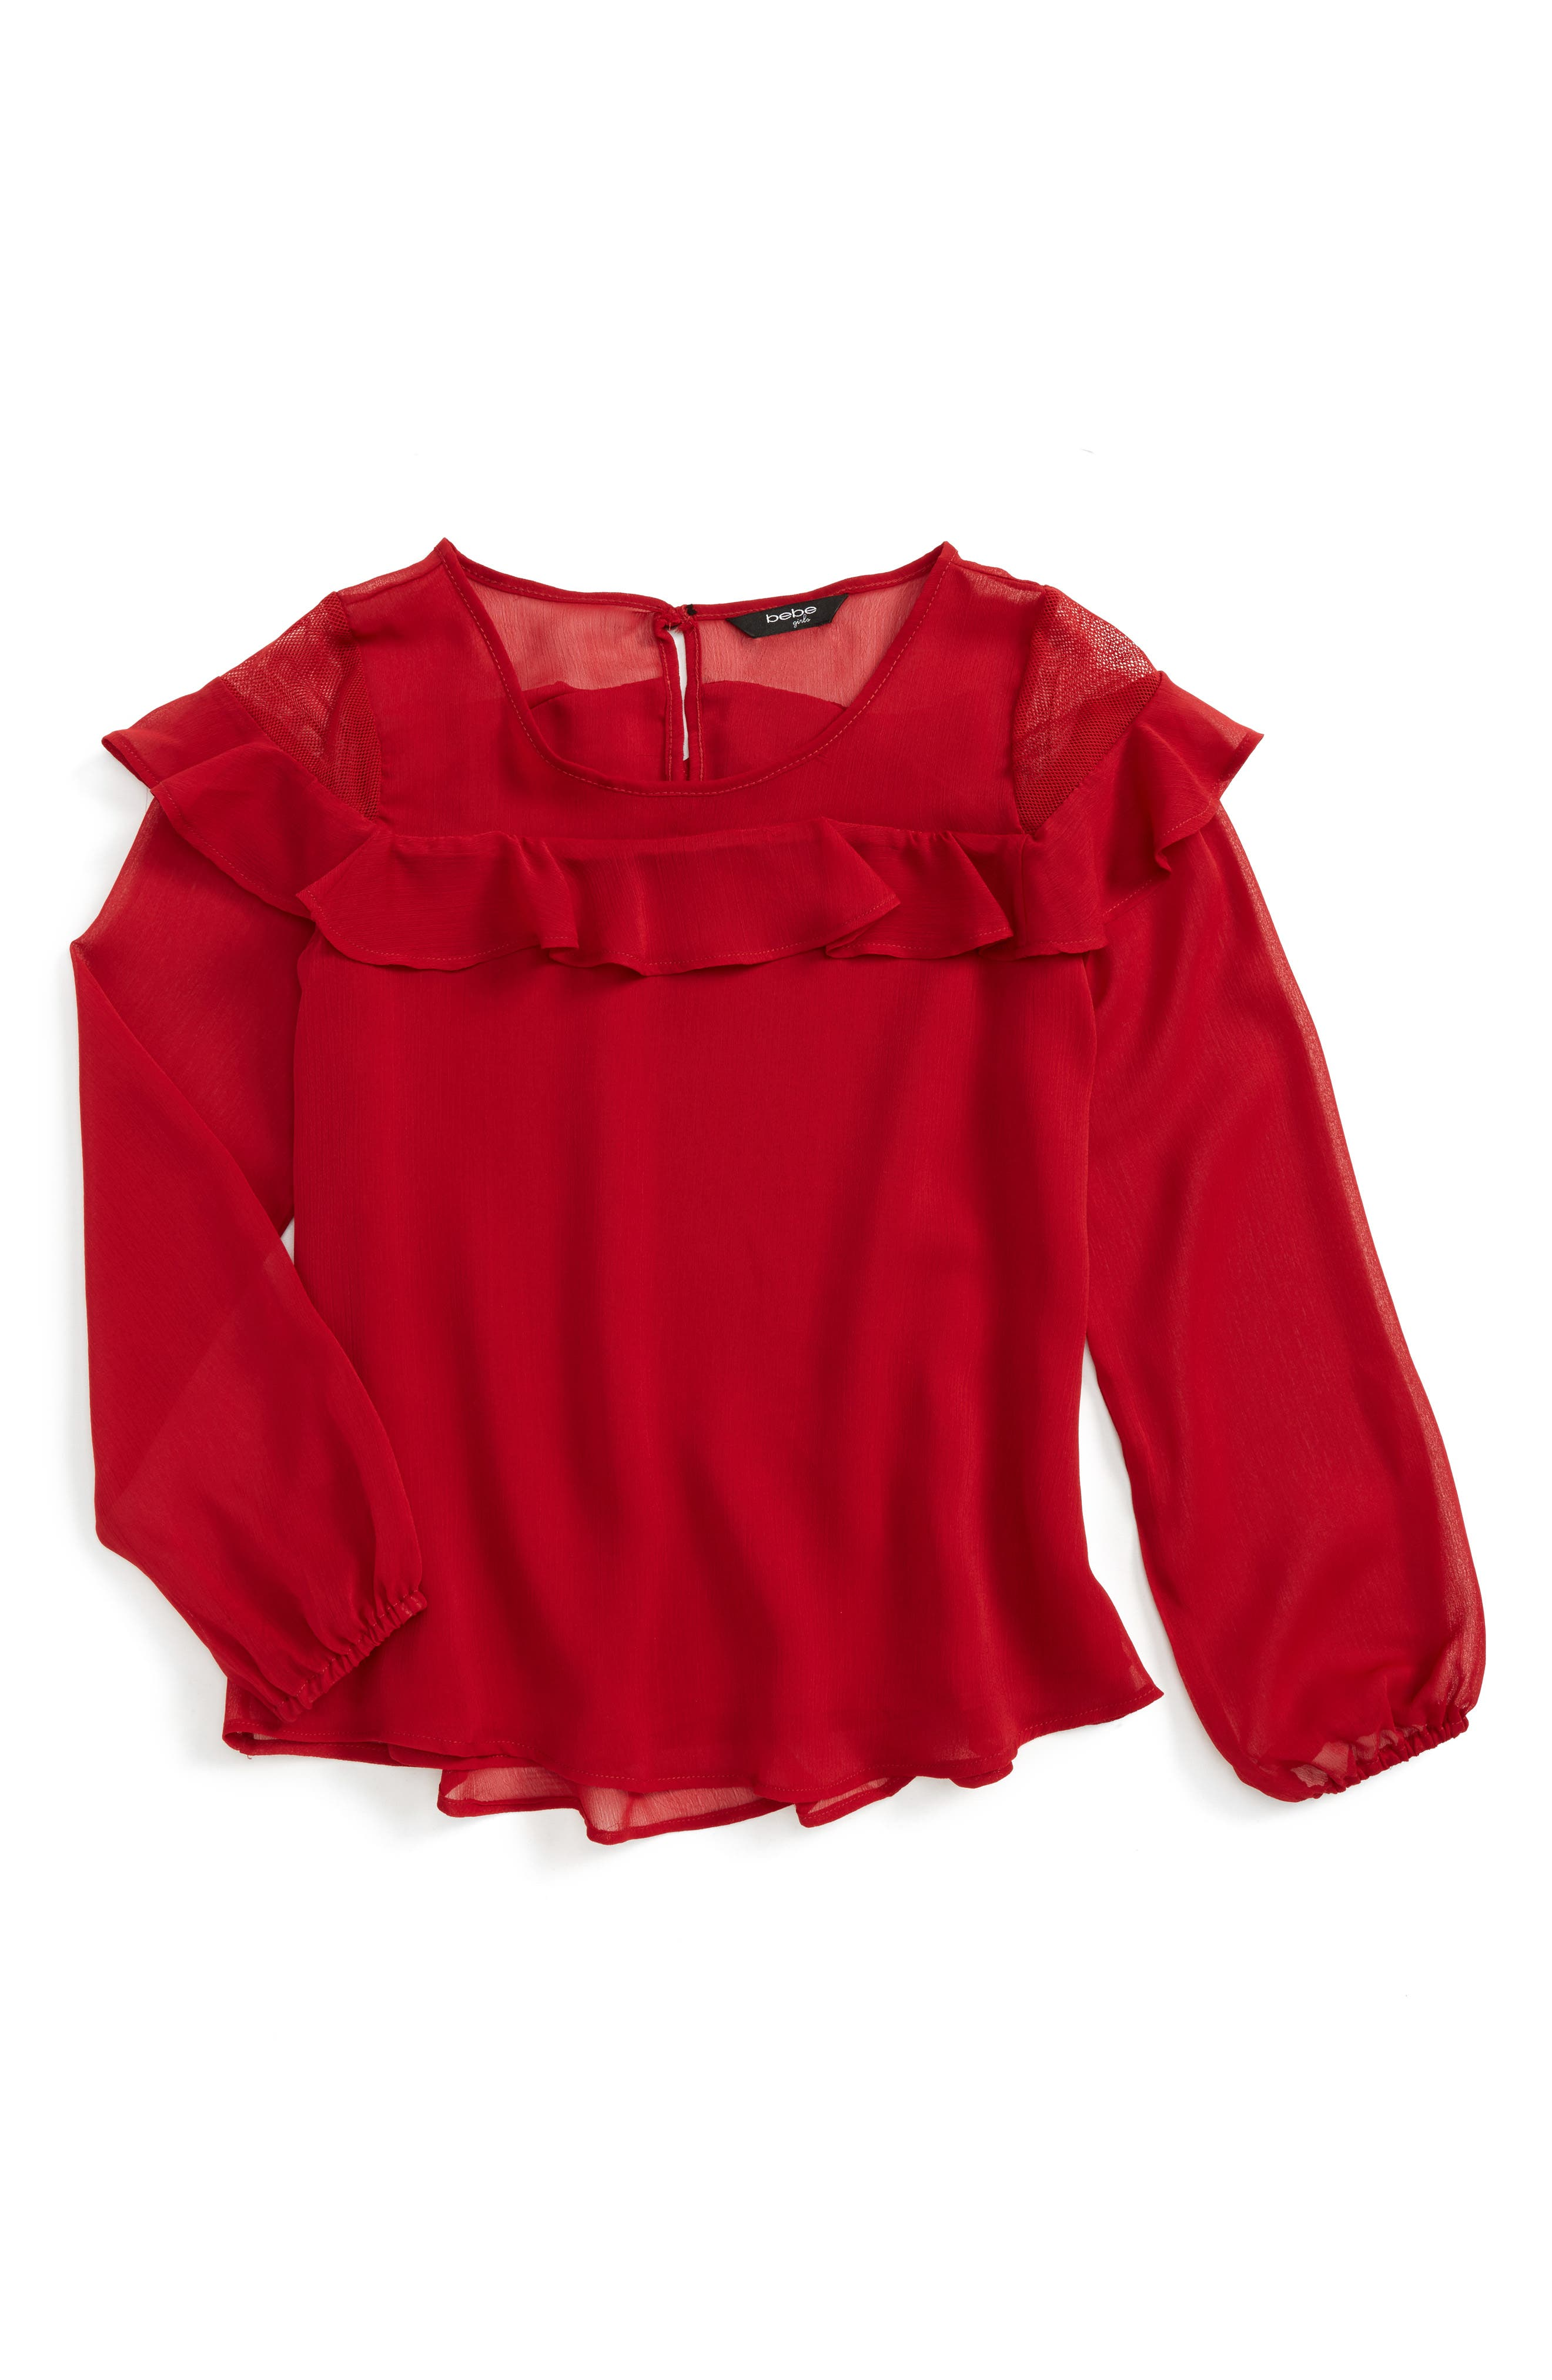 Ruffle Chiffon Top,                             Main thumbnail 1, color,                             610